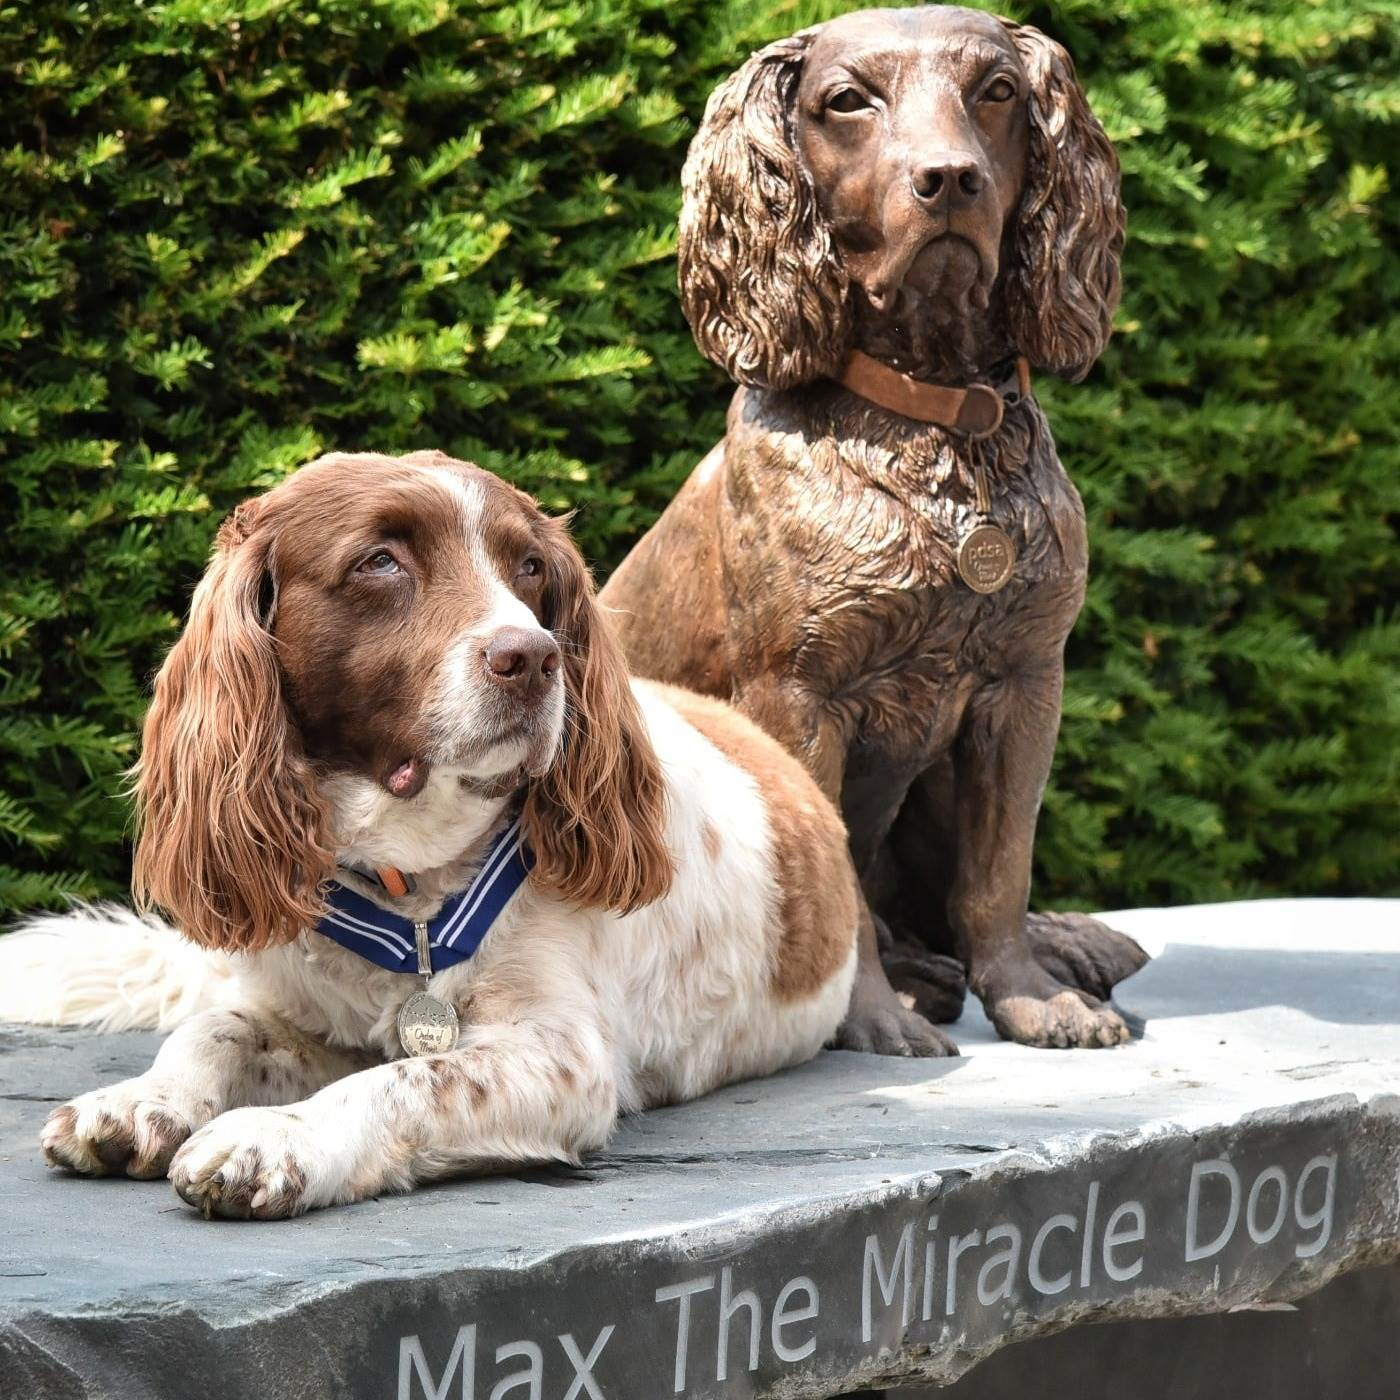 Max the miracle dog sitting by a bronze statue version of himself